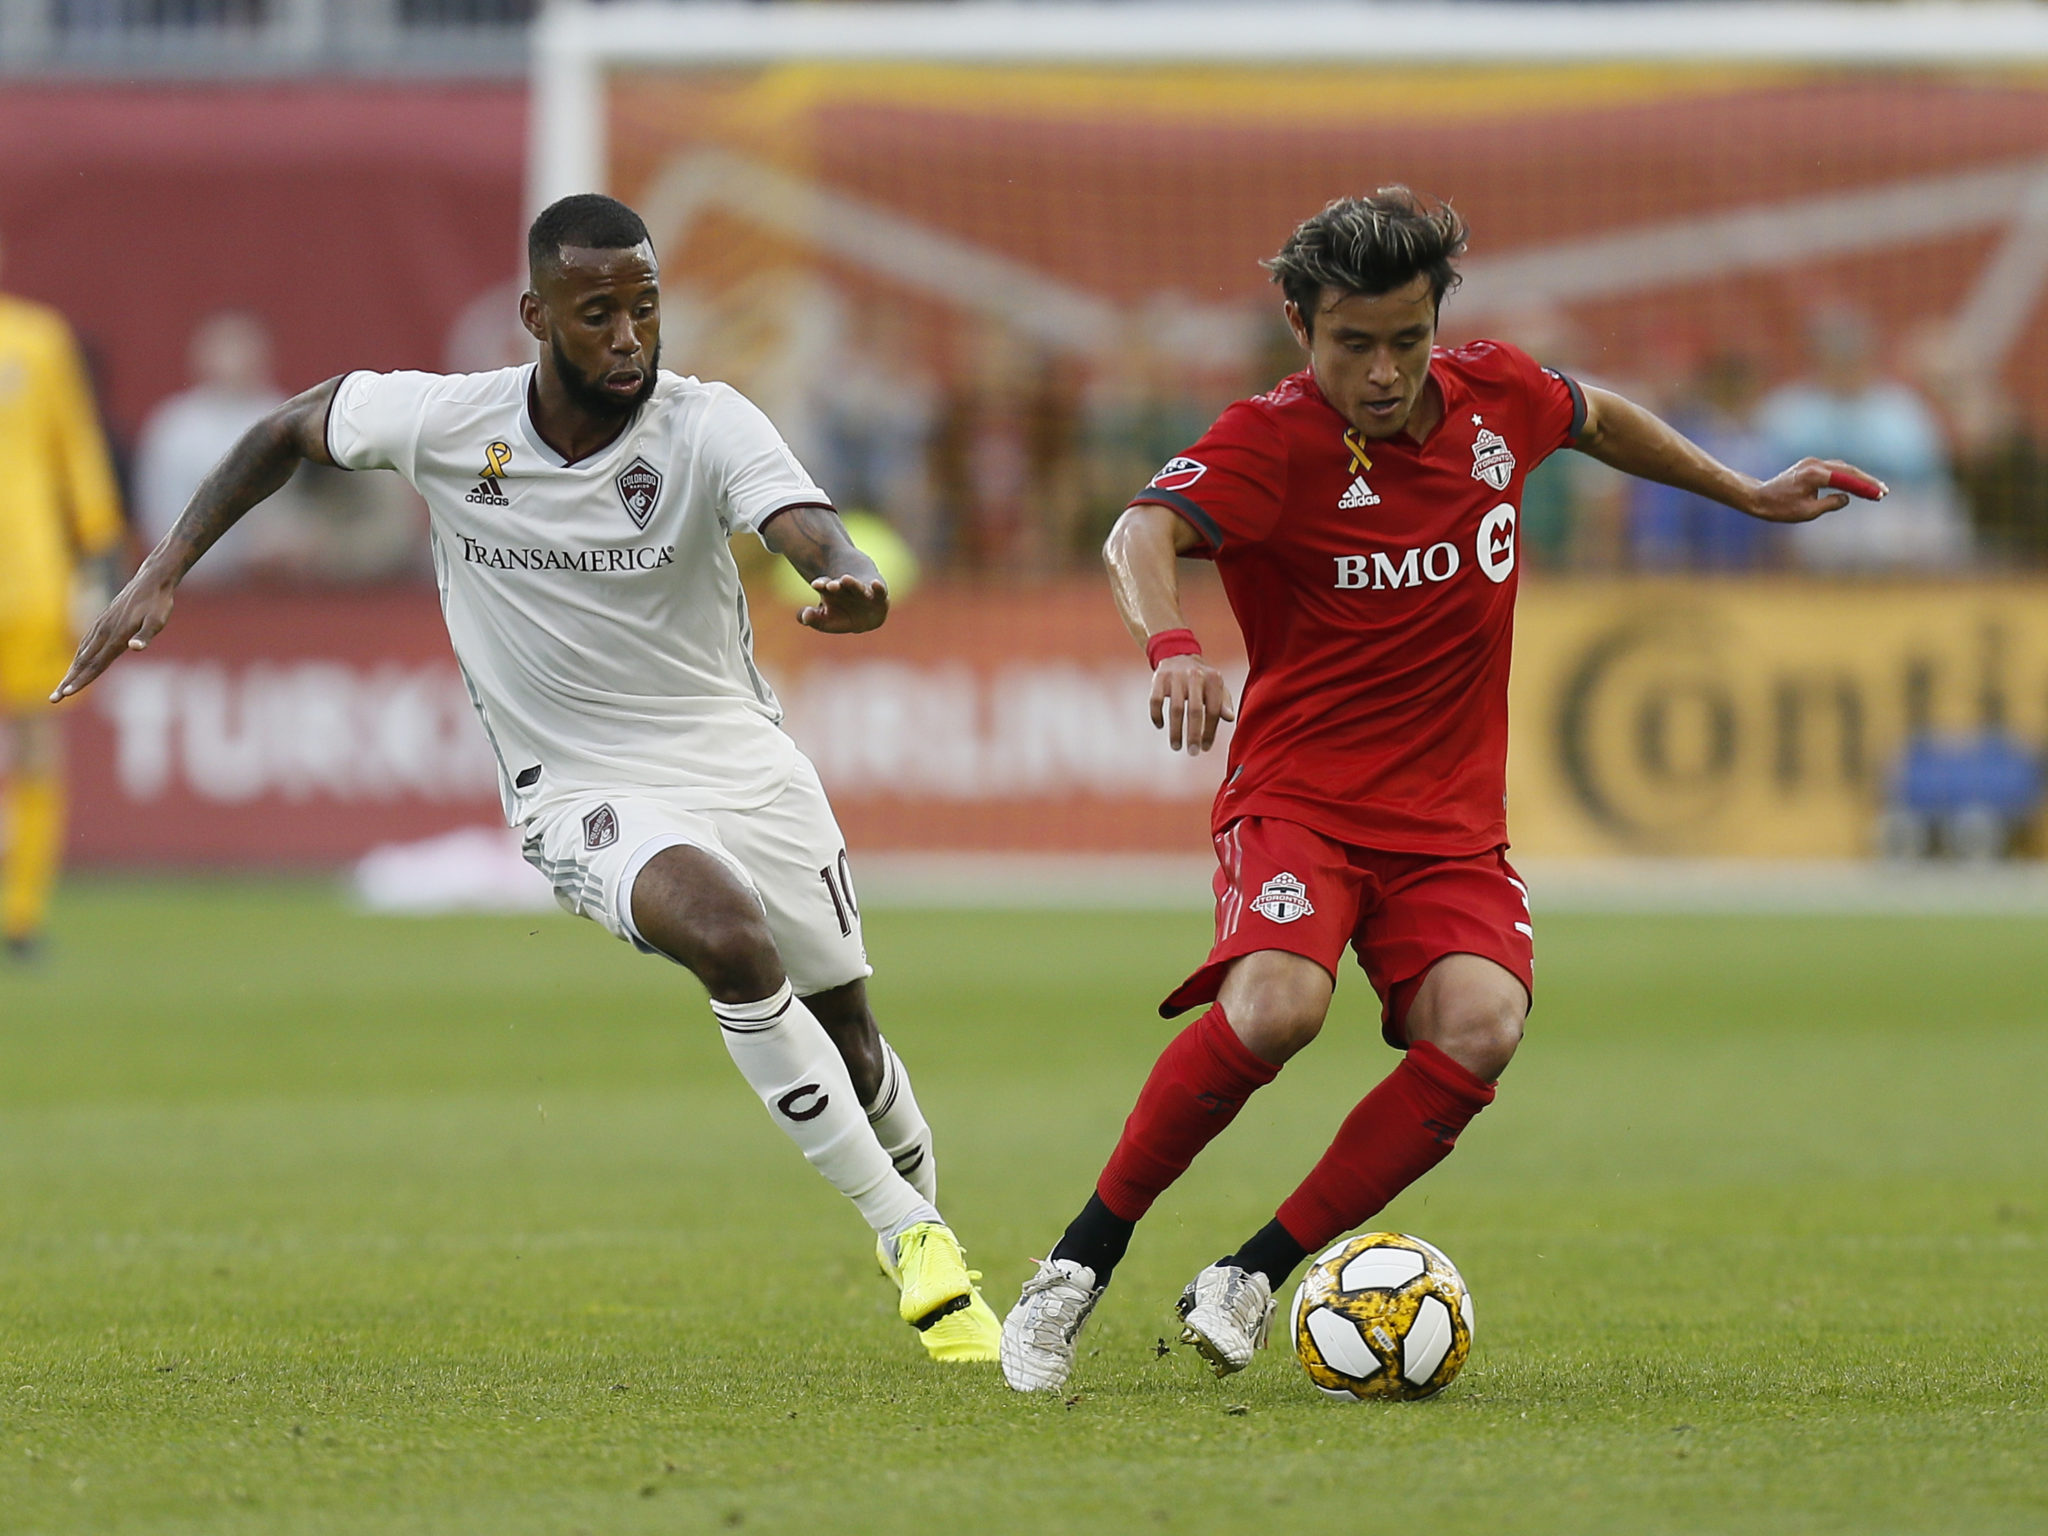 Match Report: Toronto FC overpower Colorado Rapids